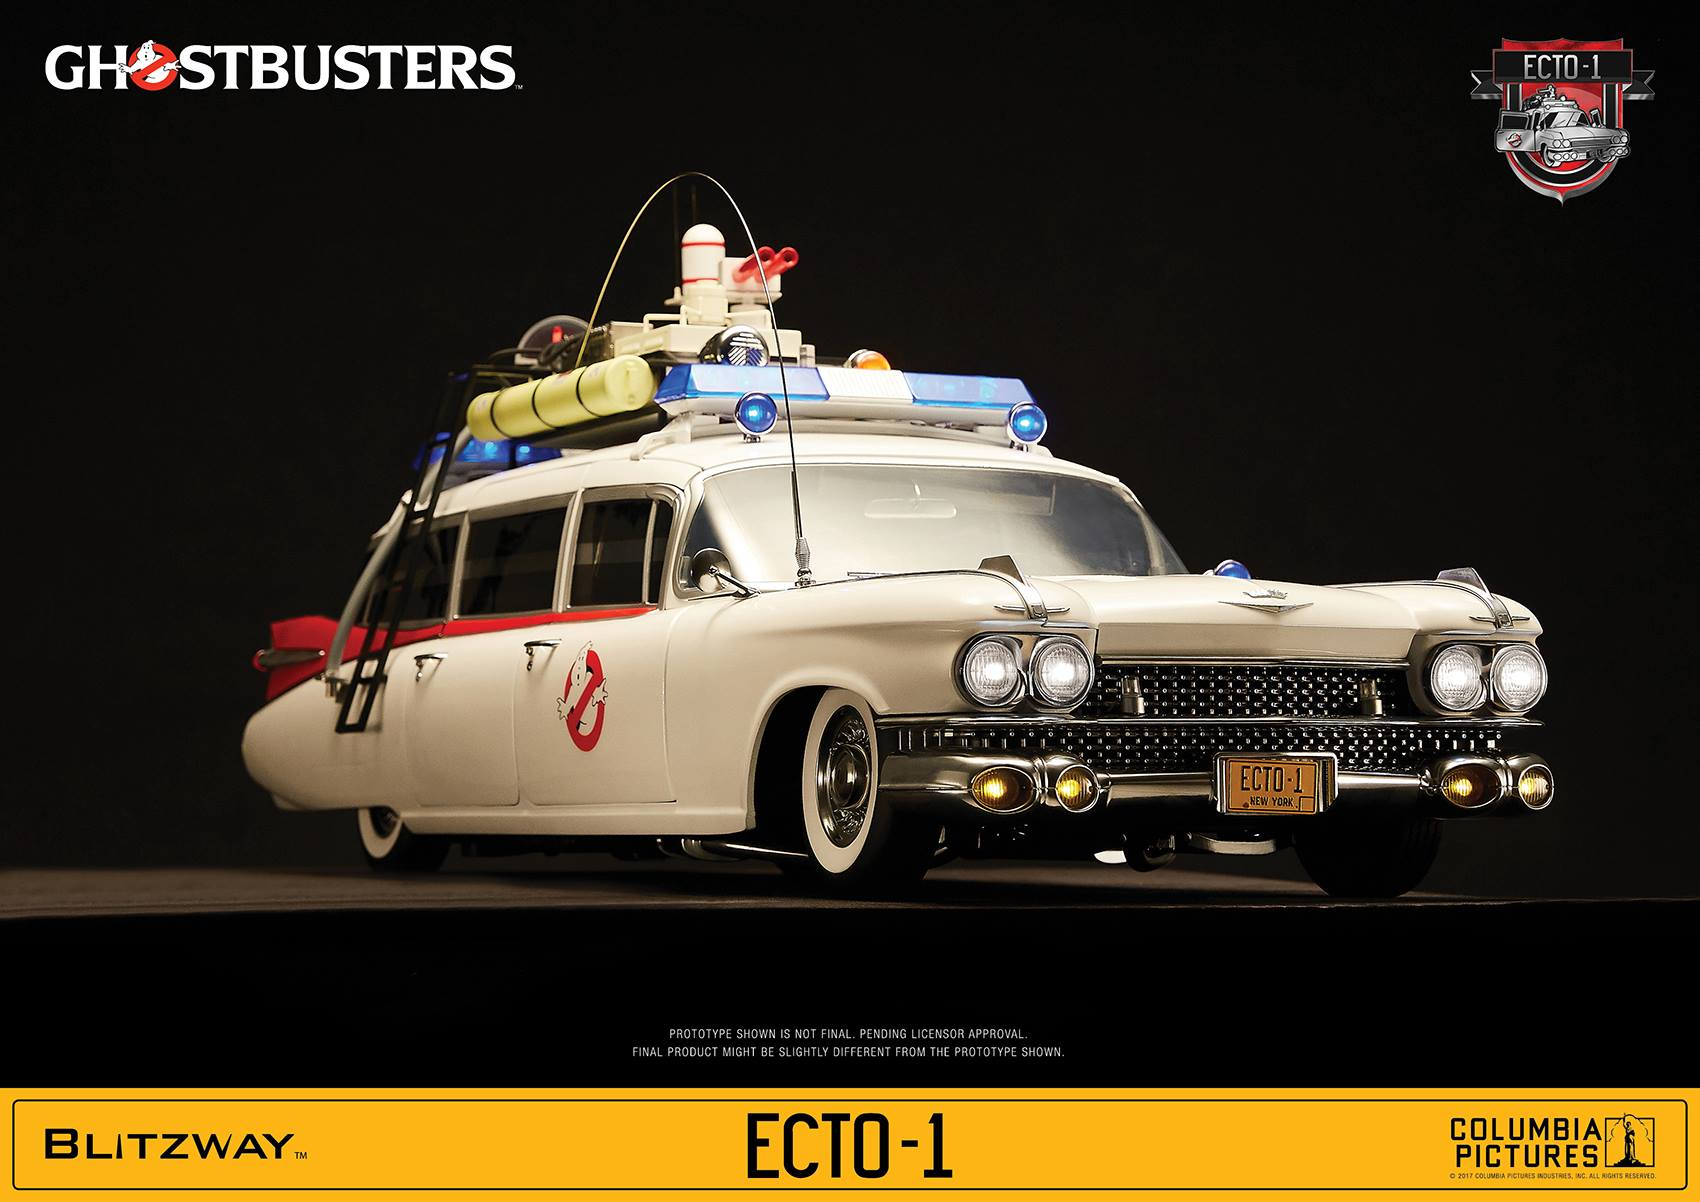 Blitzway Ghostbusters ECTO-1